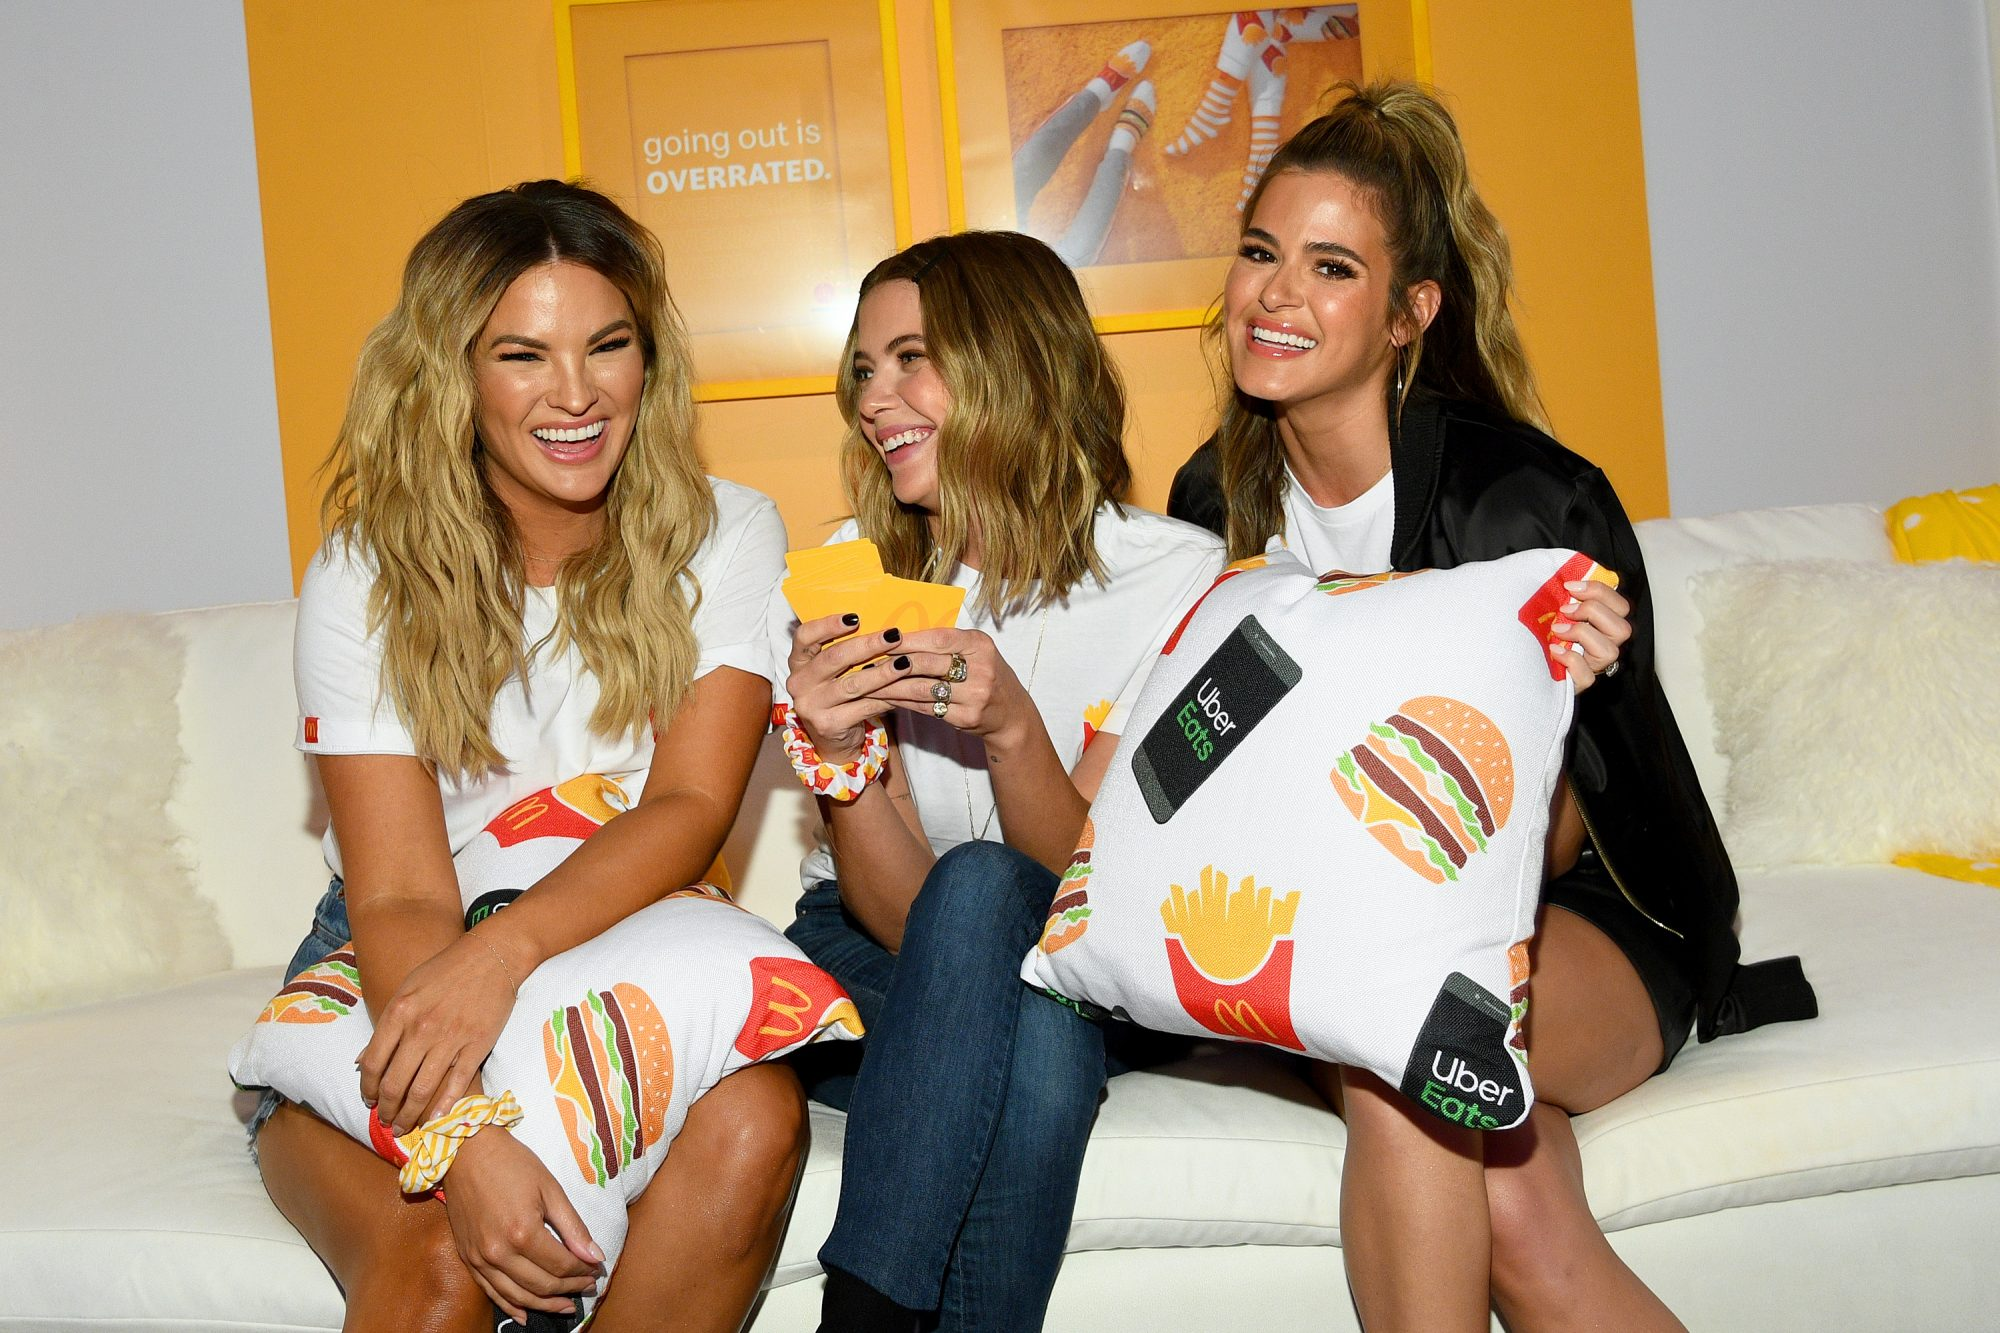 McDonald's Event In NYC